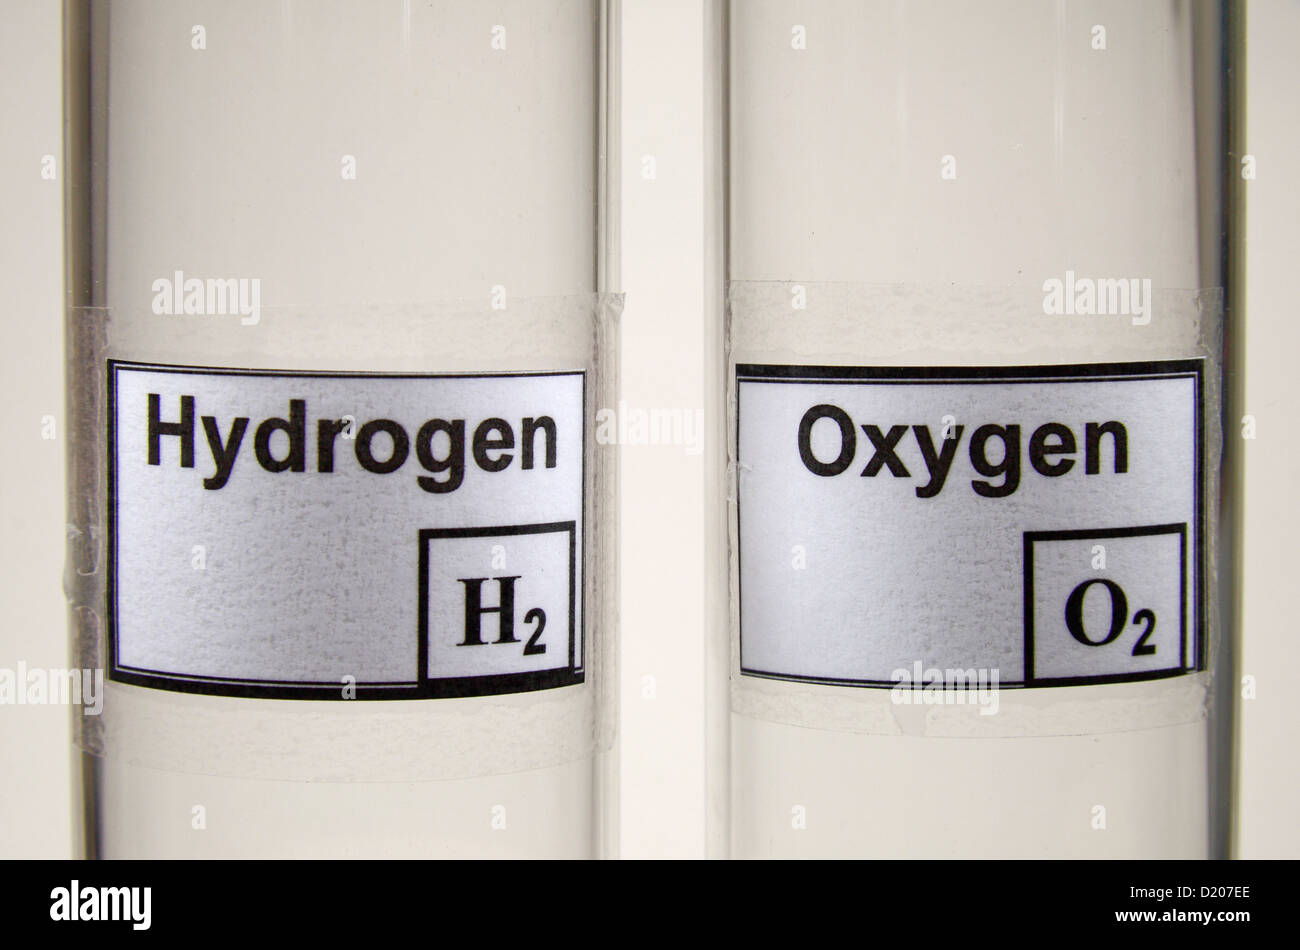 Two glass test tubes, one labeled 'Hydrogen', the other 'Oxygen'. - Stock Image